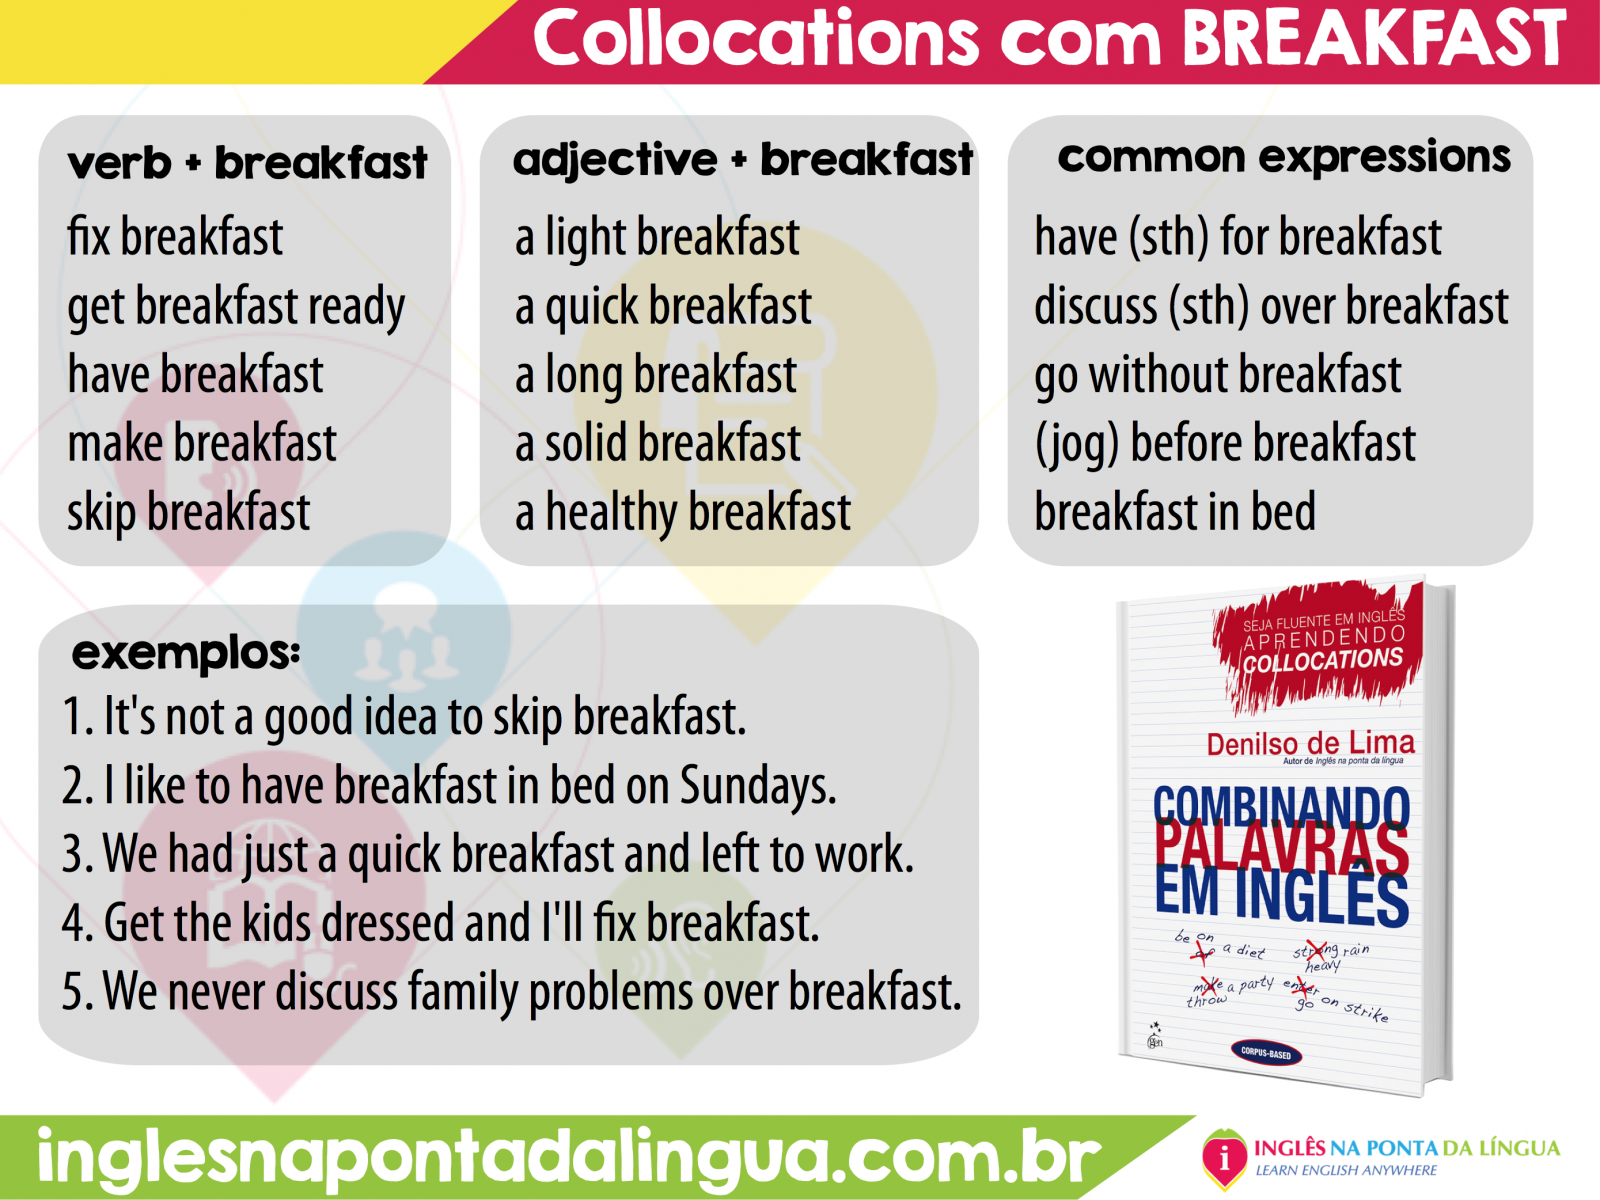 Collocations com Breakfast: melhore seu vocabulário